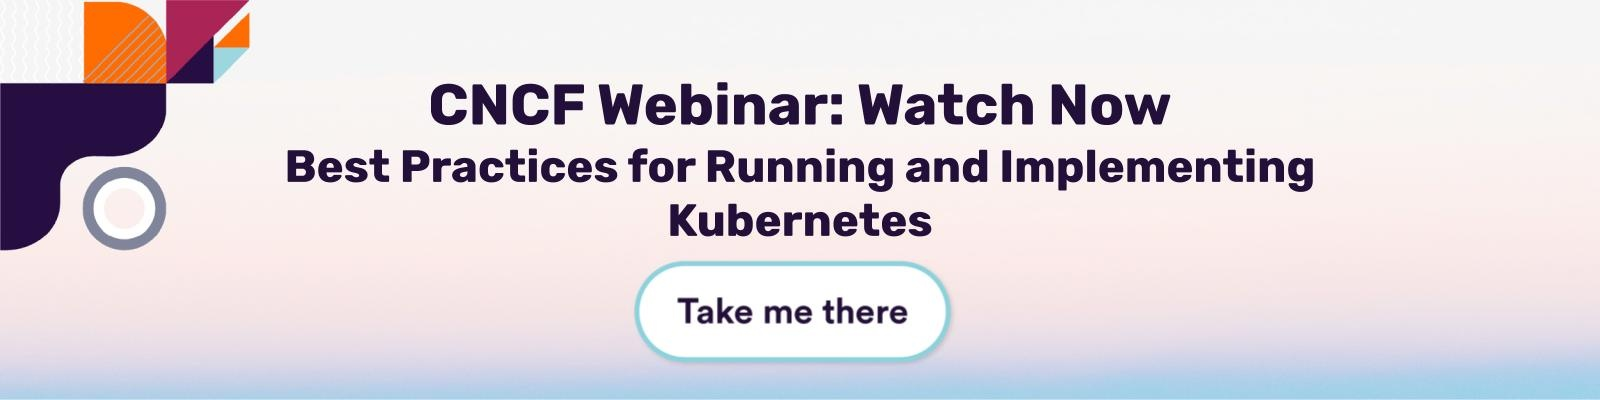 CNCF Webinar Watch Now Best Practices for Running and Implementing Kubernetes